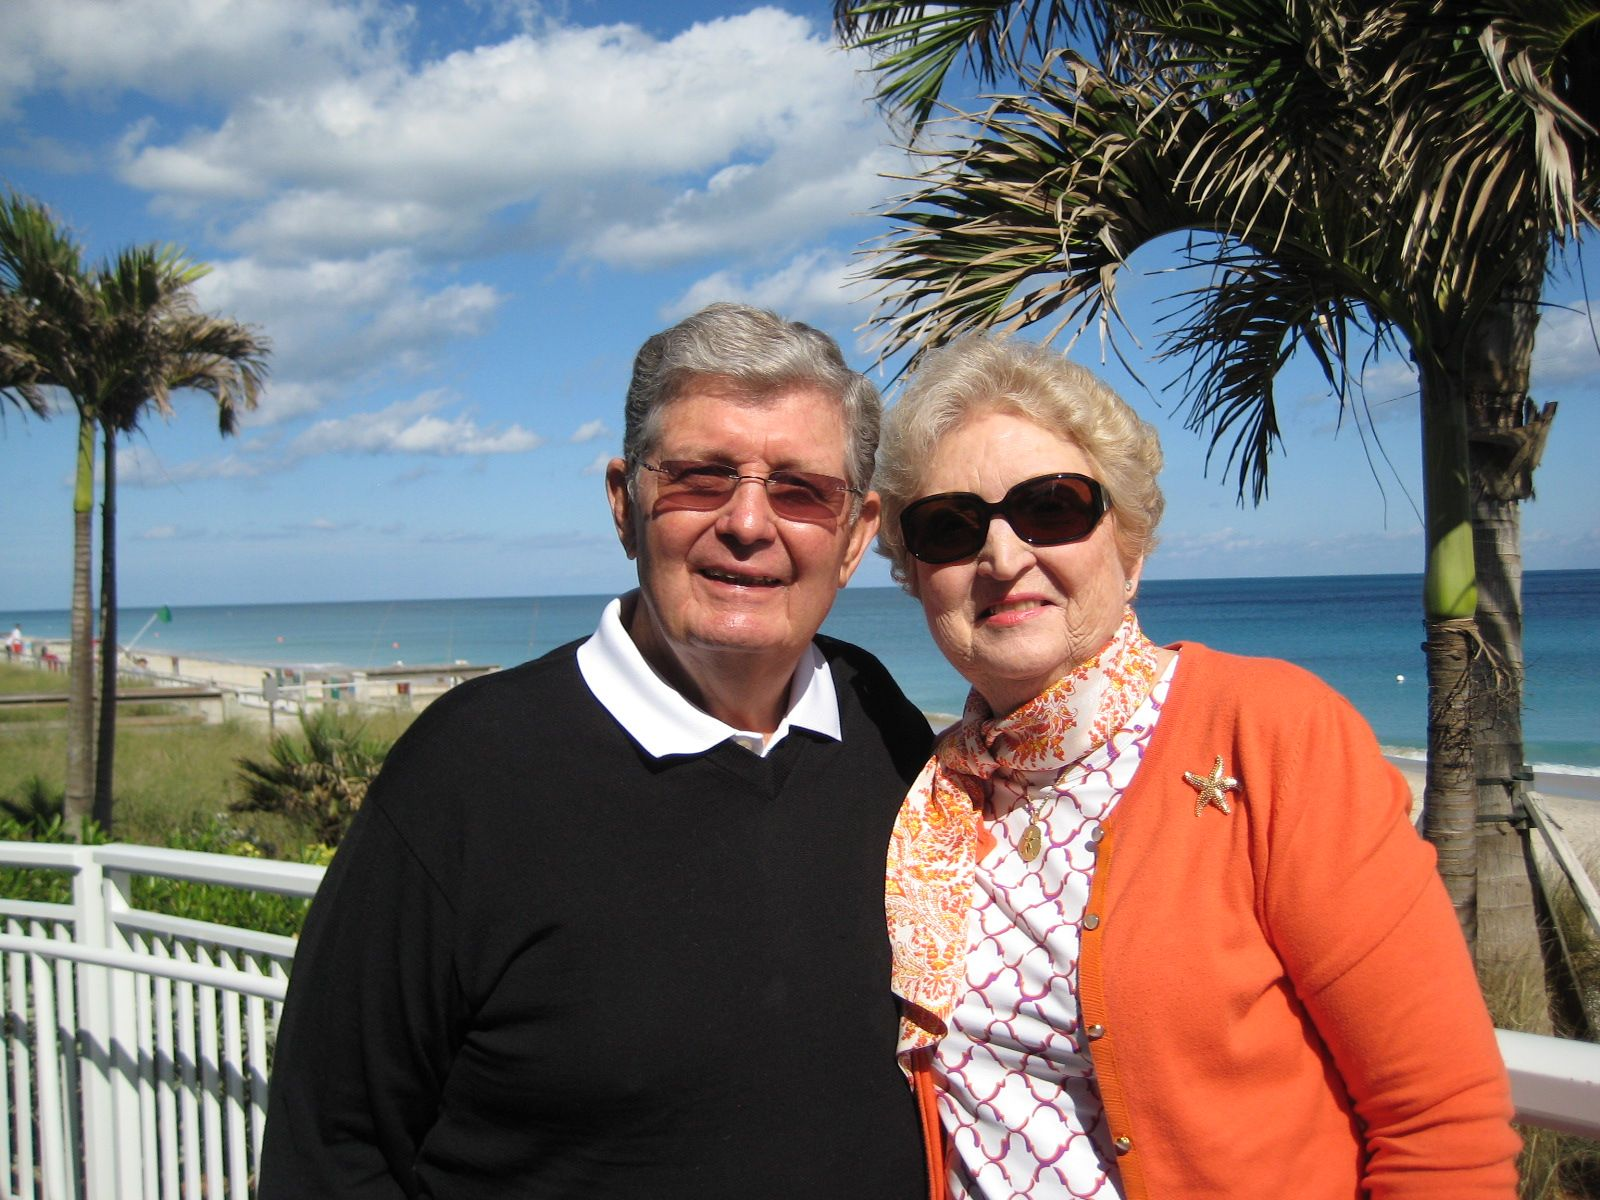 Carol Mullin and Tim Sturtevant '52 in Vero Beach, FL in January 2014